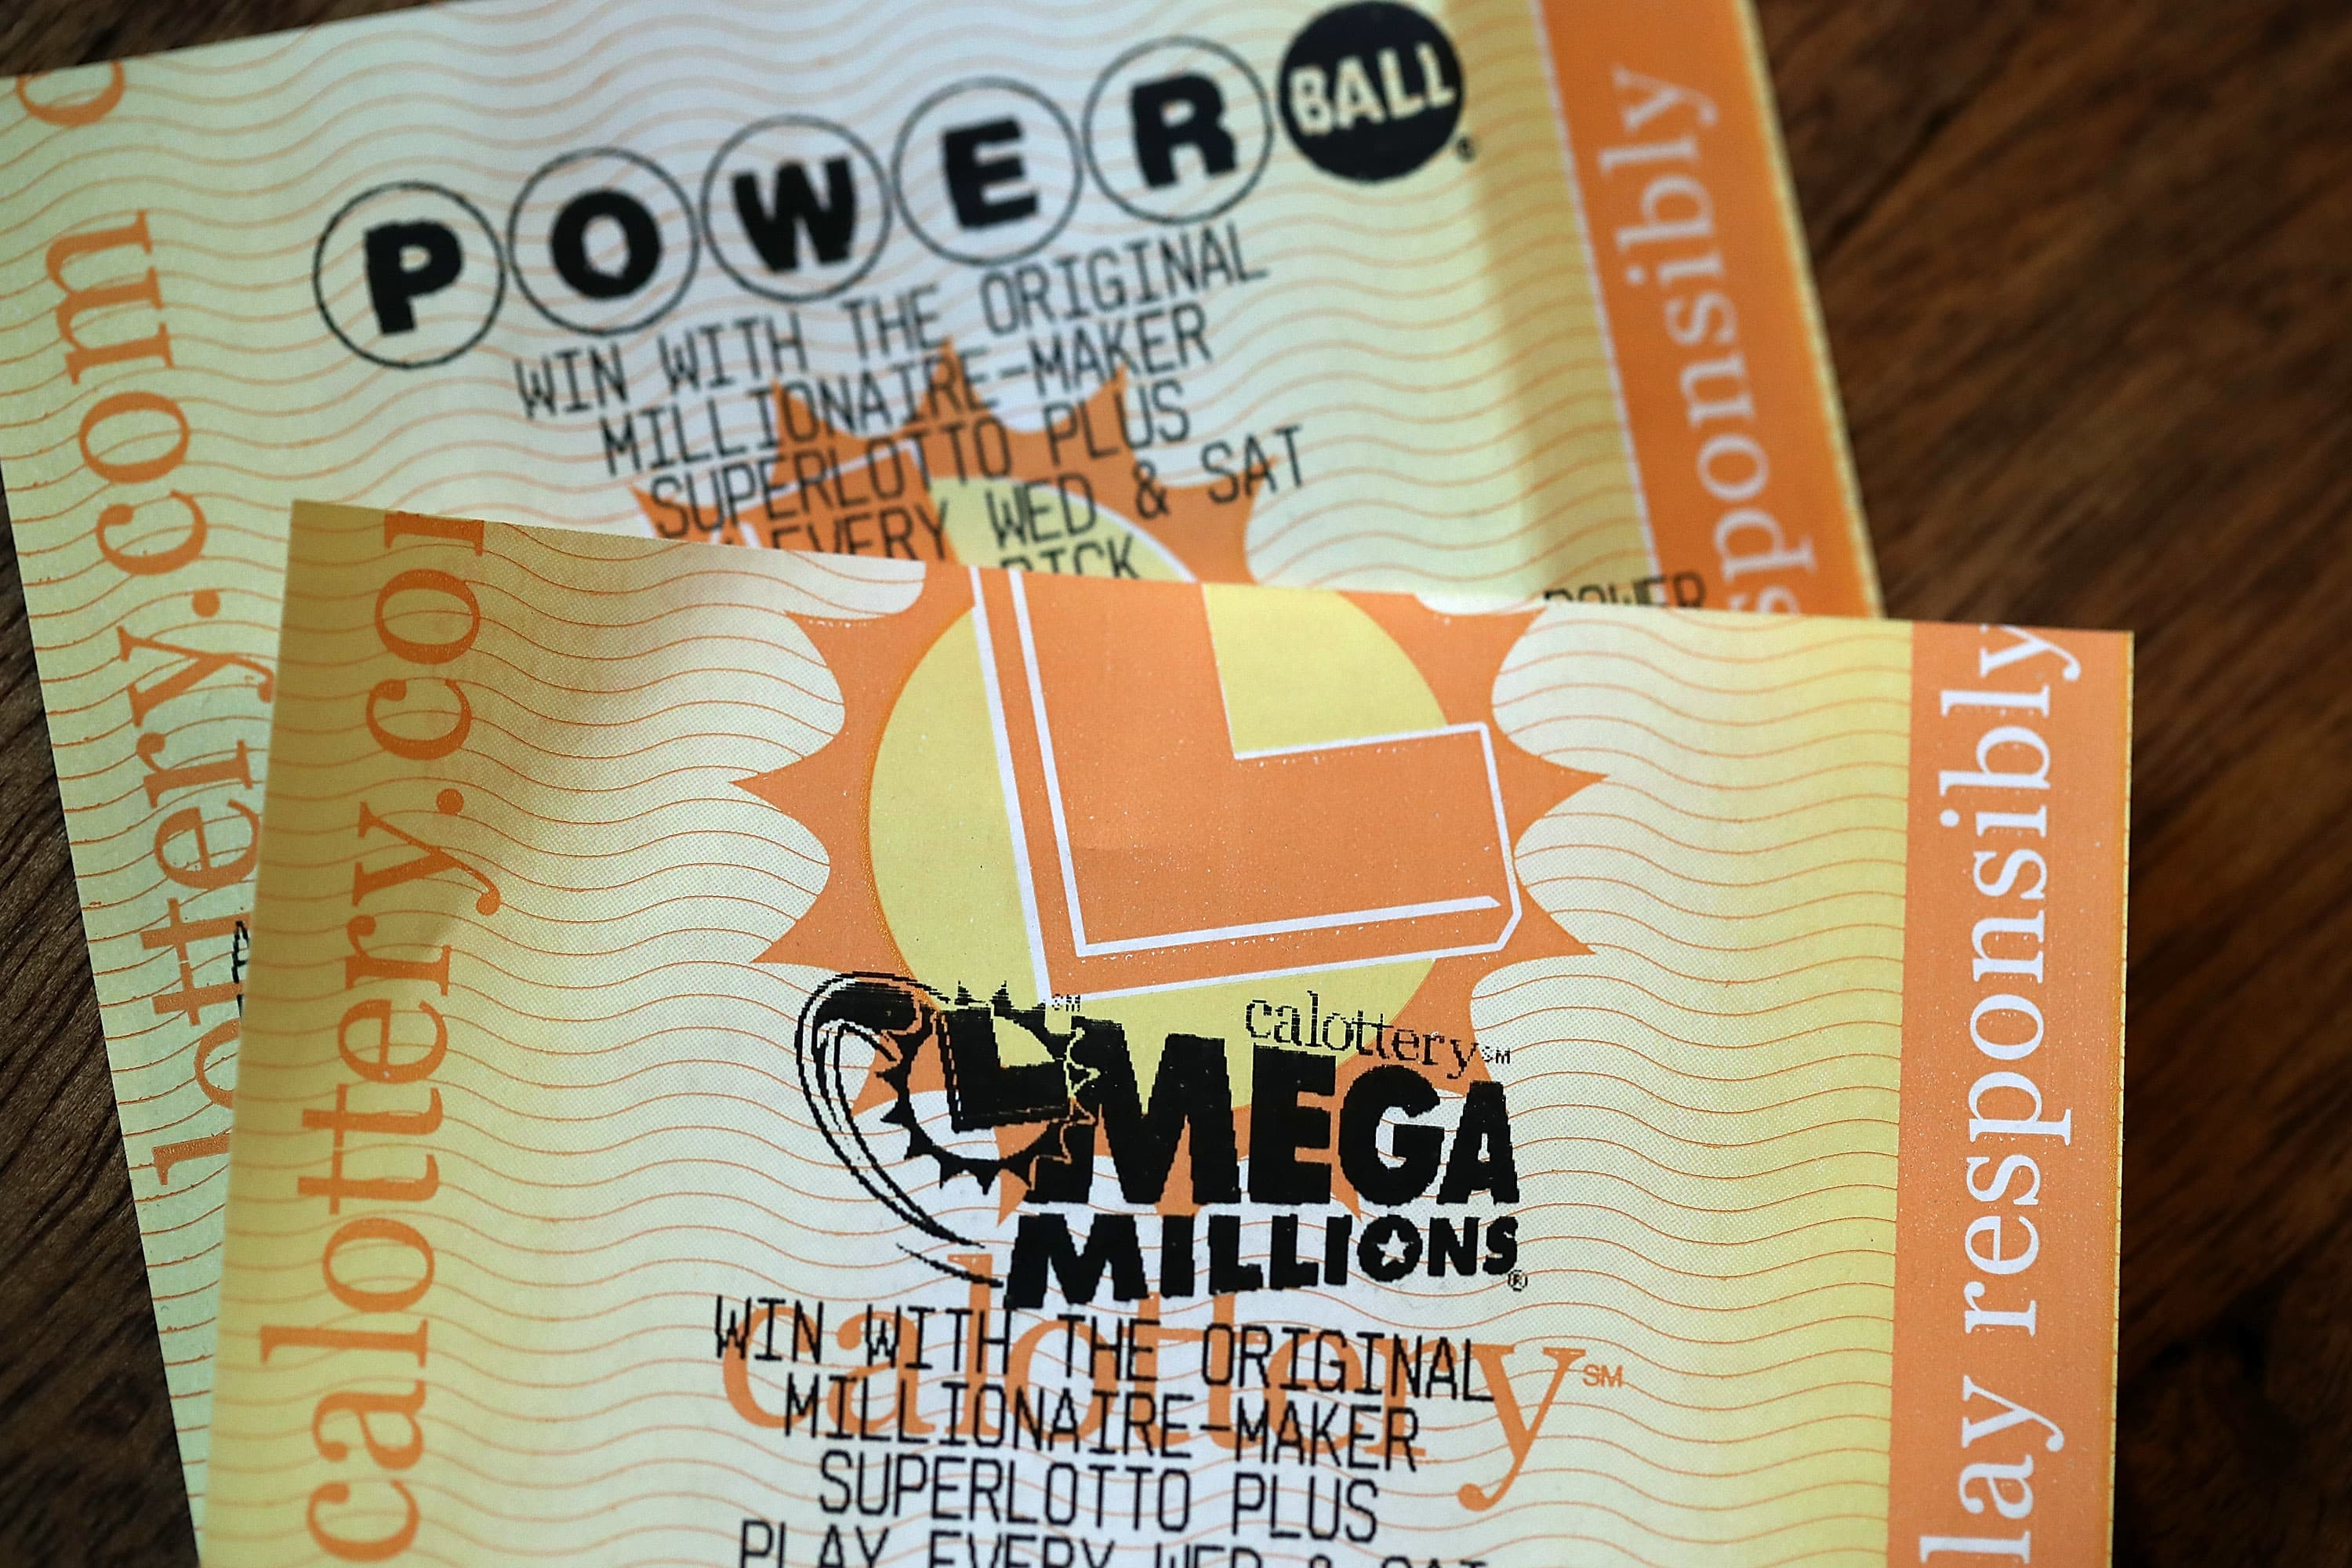 Powerball and Mega Millions lottery tickets are displayed.